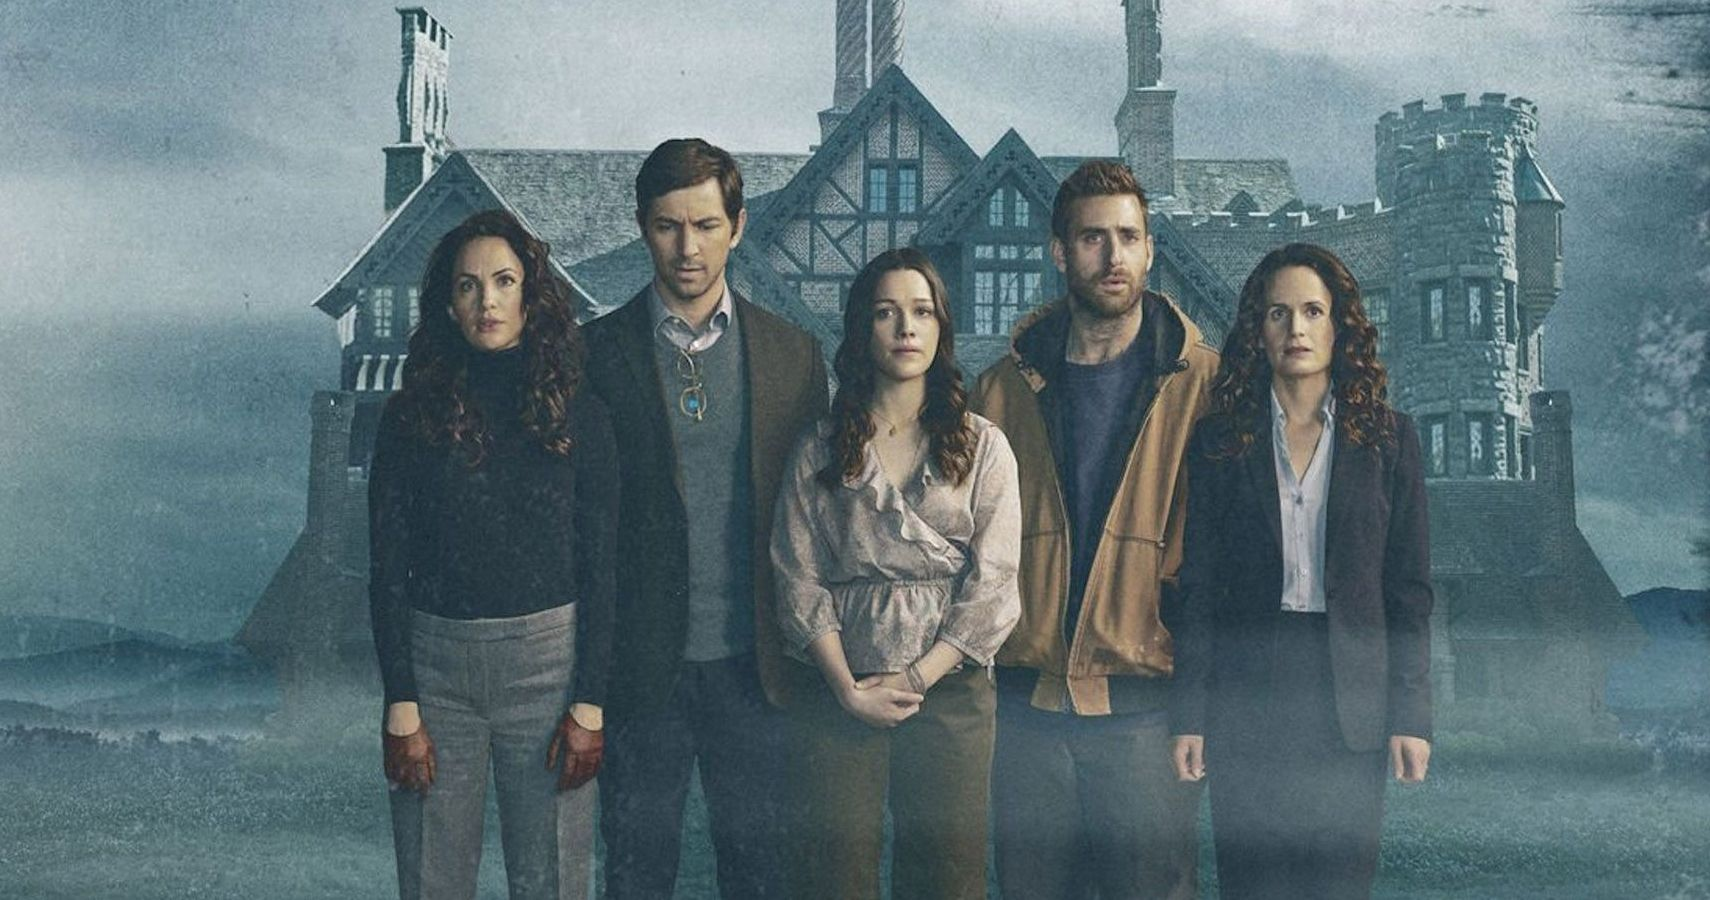 The Haunting Of Hill House 10 Scariest Scenes From Season 1 That Still Give Us Nightmares